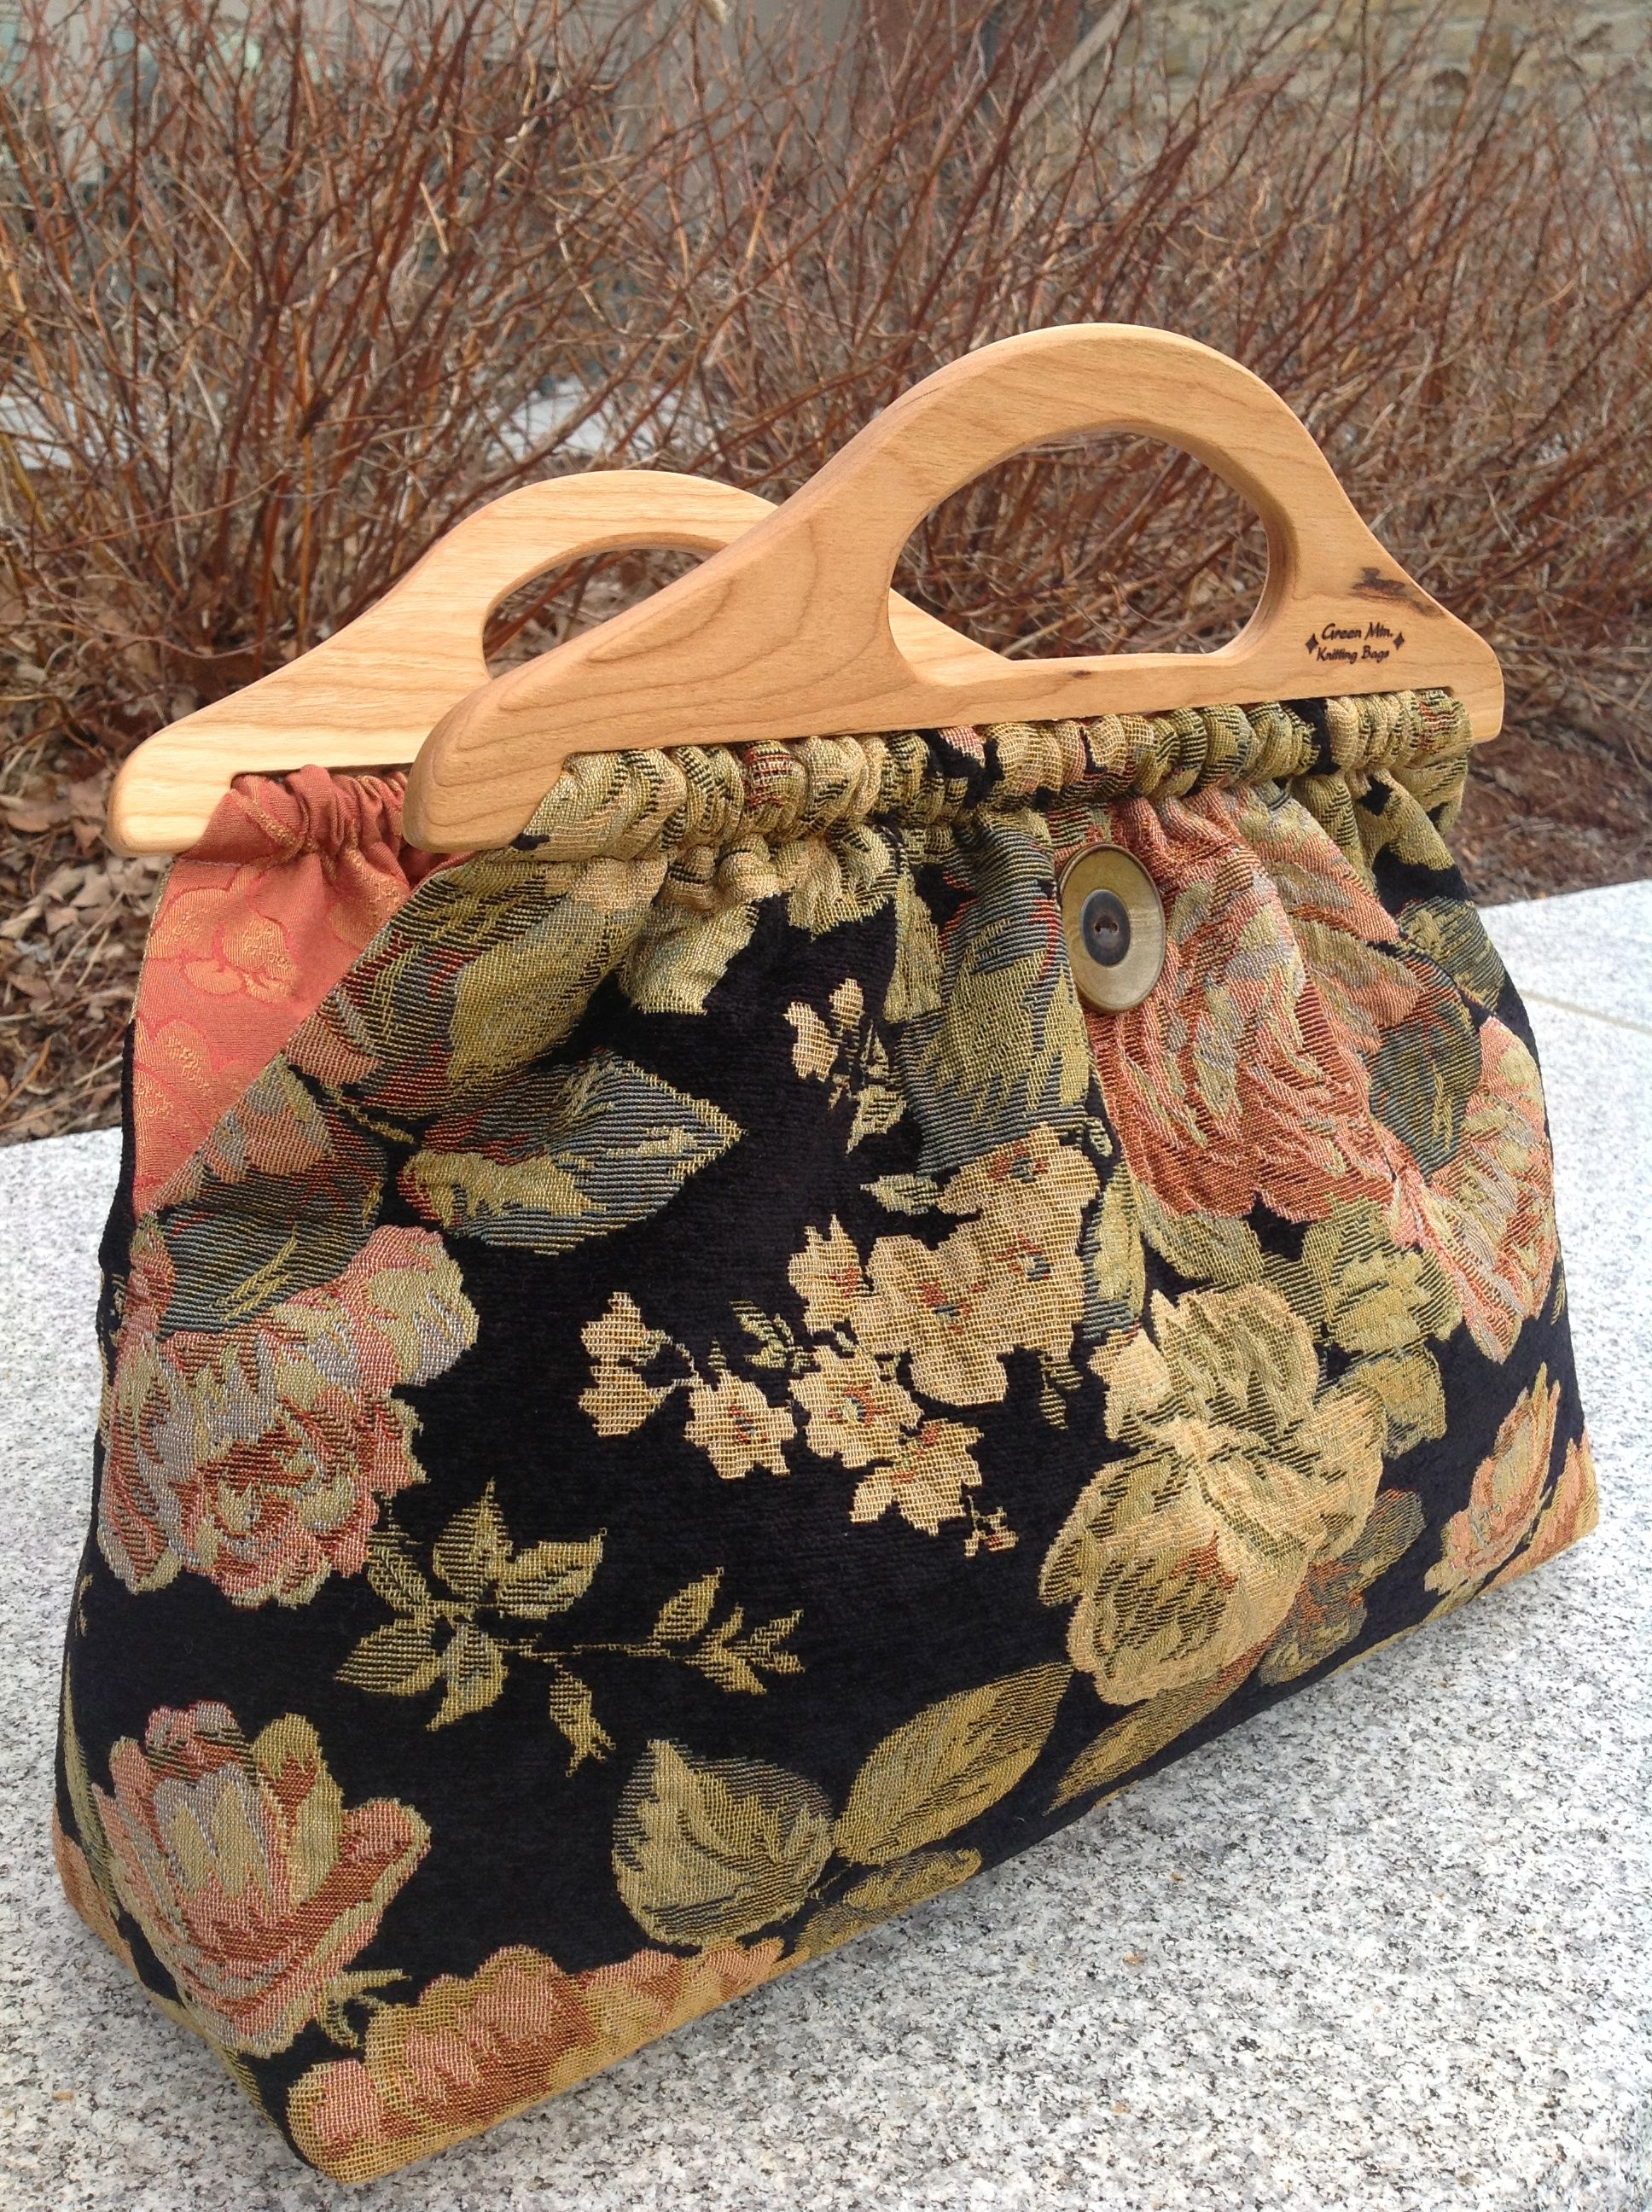 Cabbage Rose Chenille Upholstery Fabric Knitting Tote Bag Knitted Bags Quilted Bag